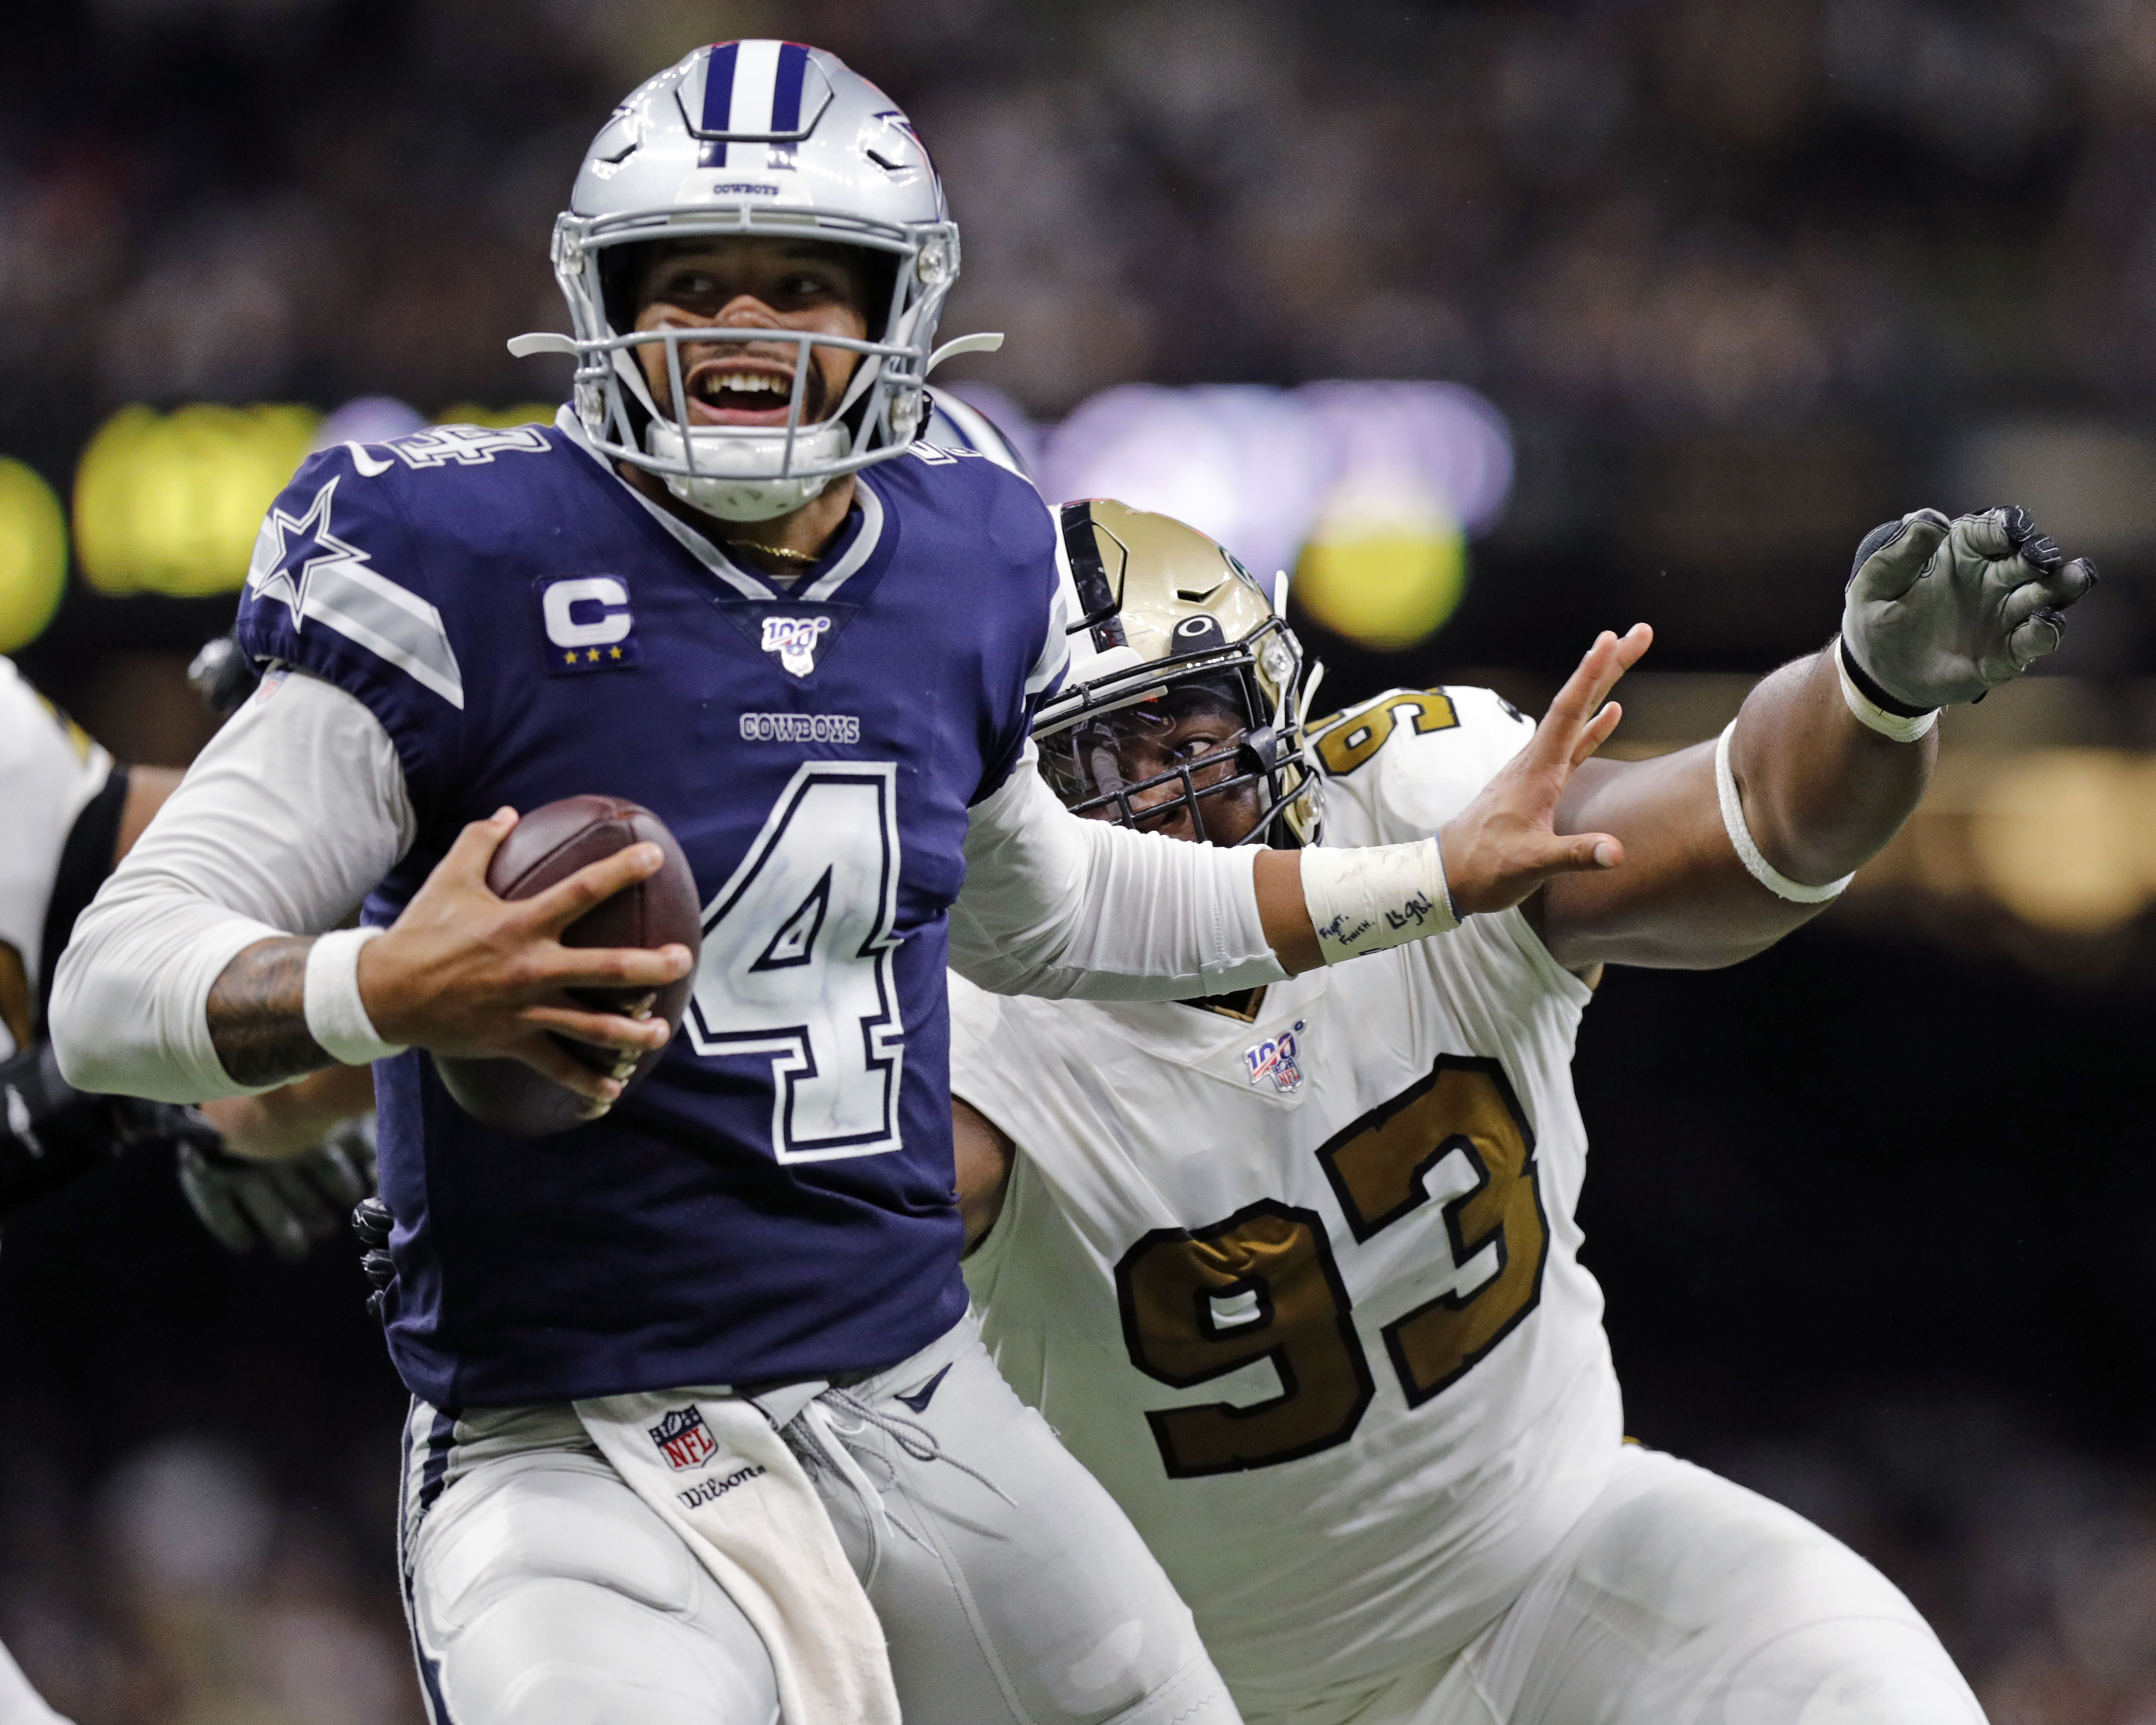 NEW ORLEANS, LA - SEPTEMBER 29:  New Orleans Saints defensive tackle David Onyemata (93) gets a sack against Dallas Cowboys quarterback Dak Prescott (4) during the game between the New Orleans Saints and the Dallas Cowboys on September 29, 2019 at the Mercedes-Benz Superdome in New Orleans, LA. (Photo by Stephen Lew/Icon Sportswire via Getty Images)